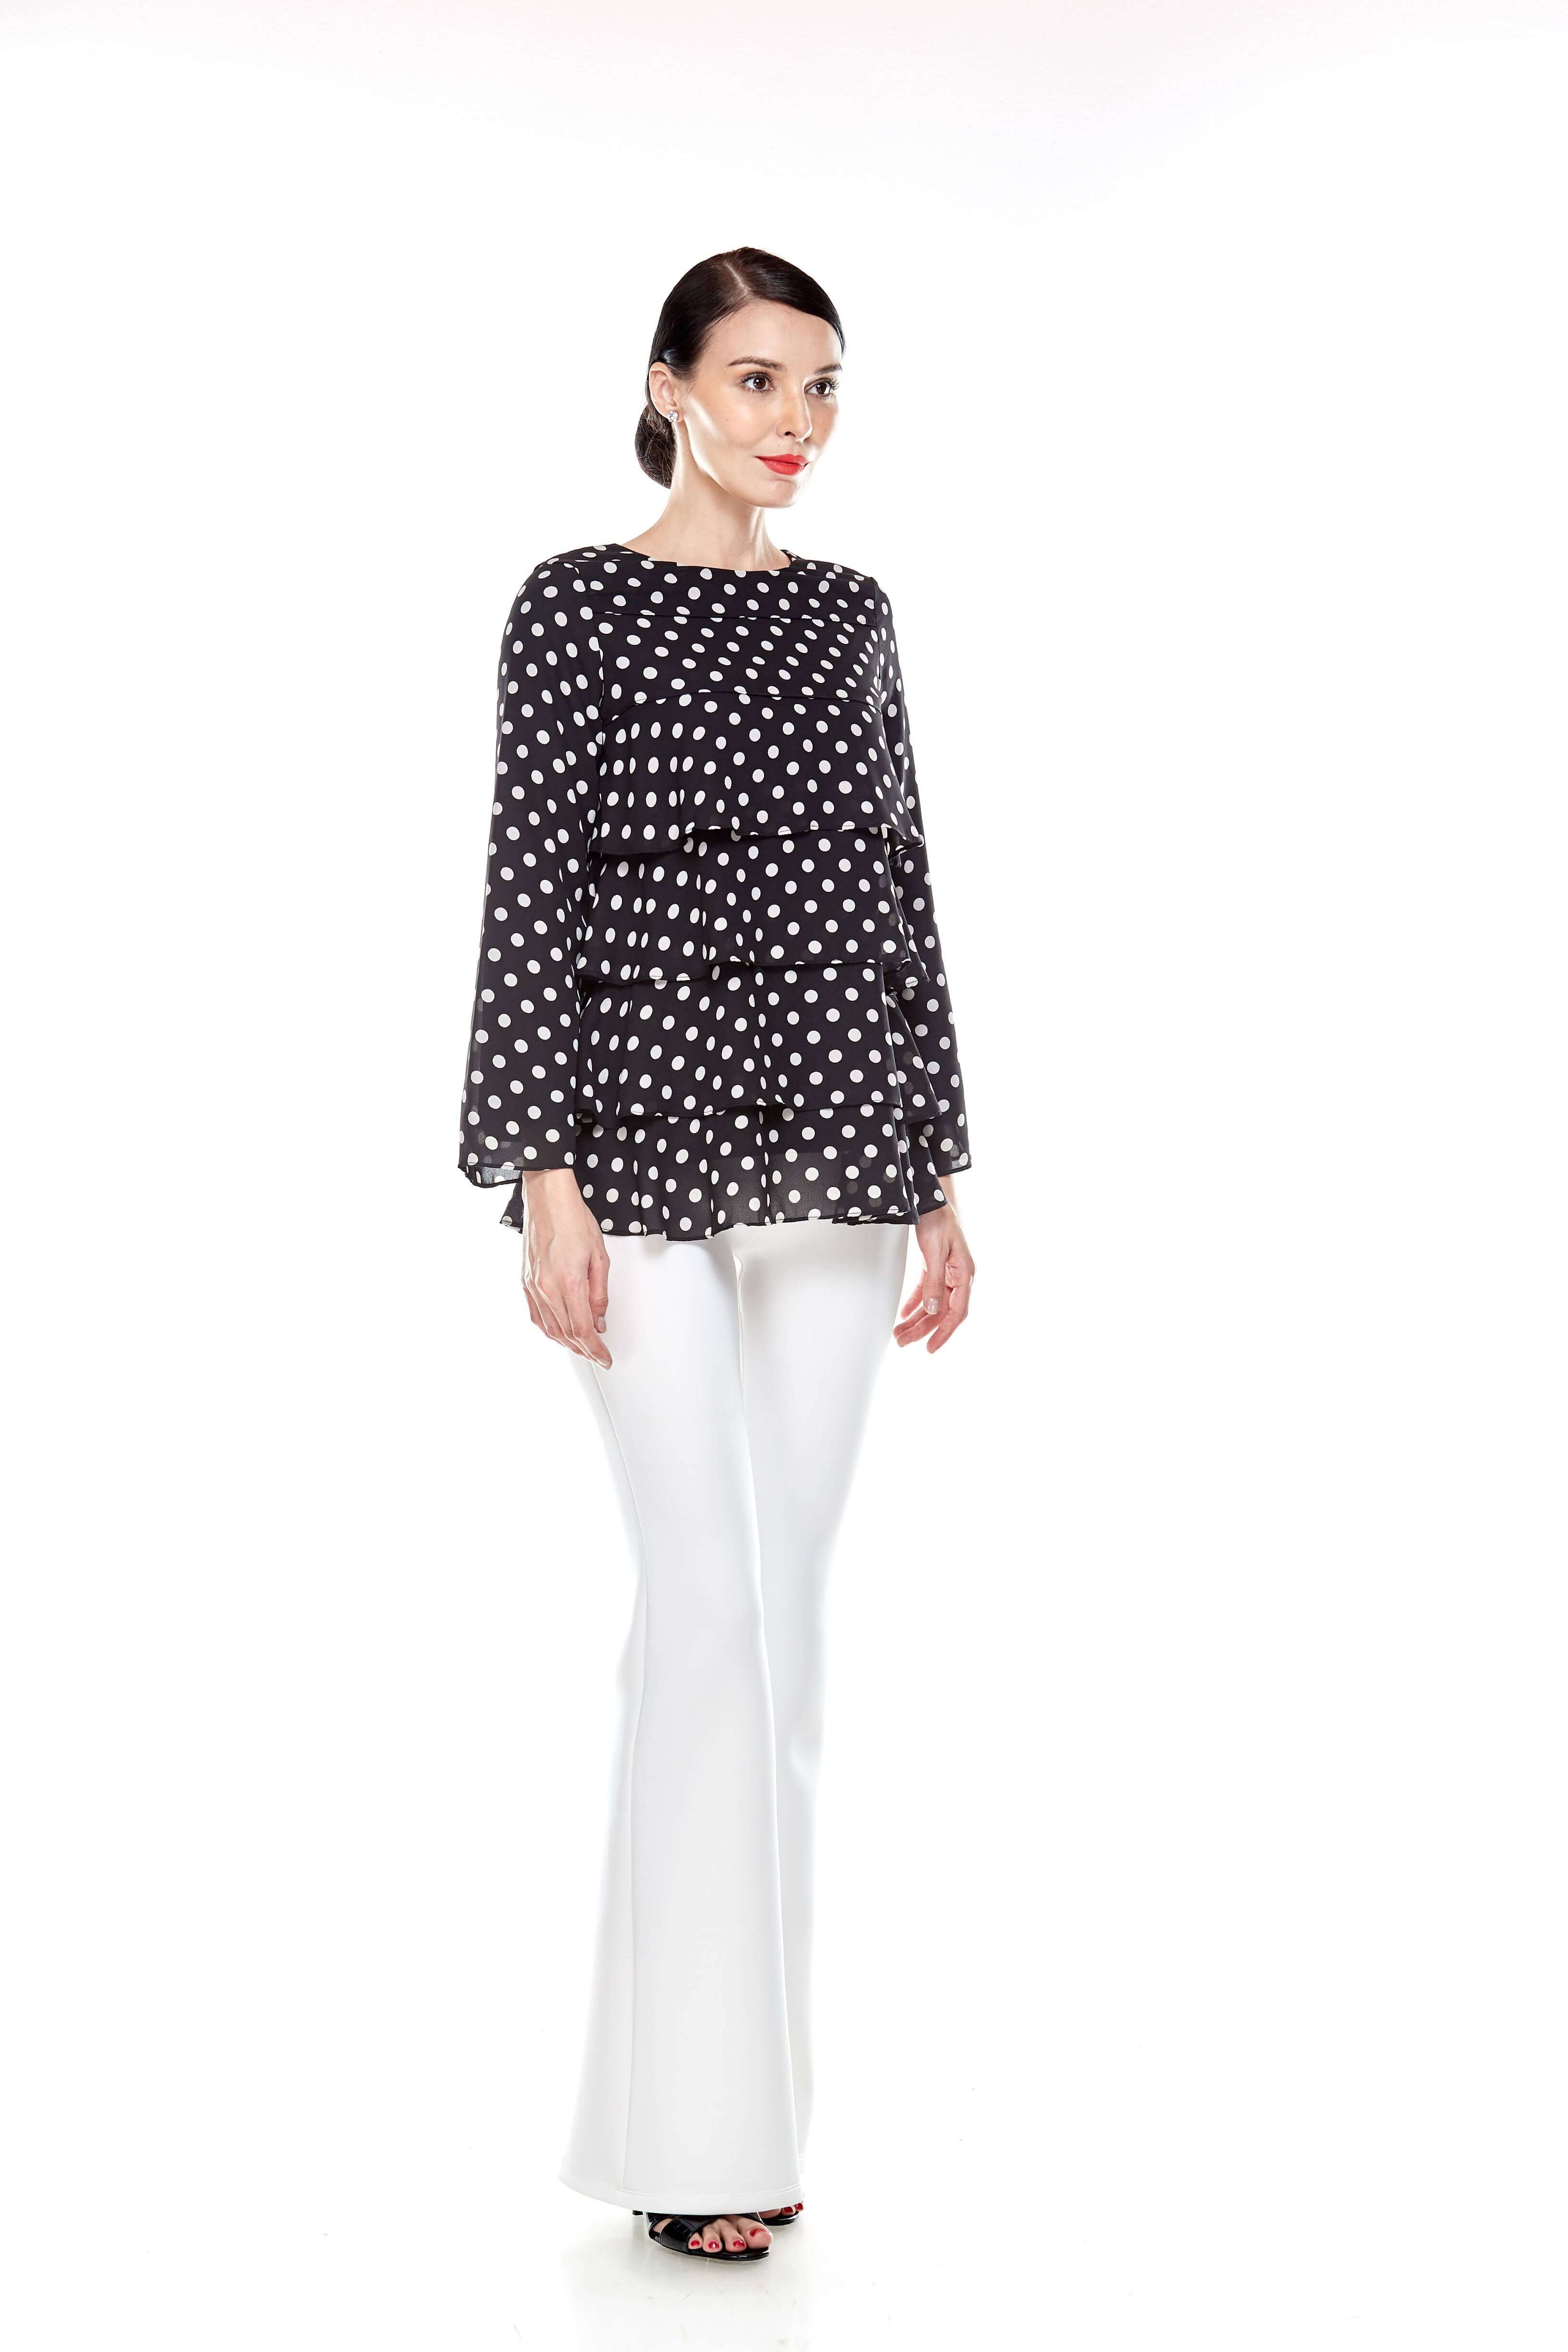 Black Tier Polka Dot Blouse (8)